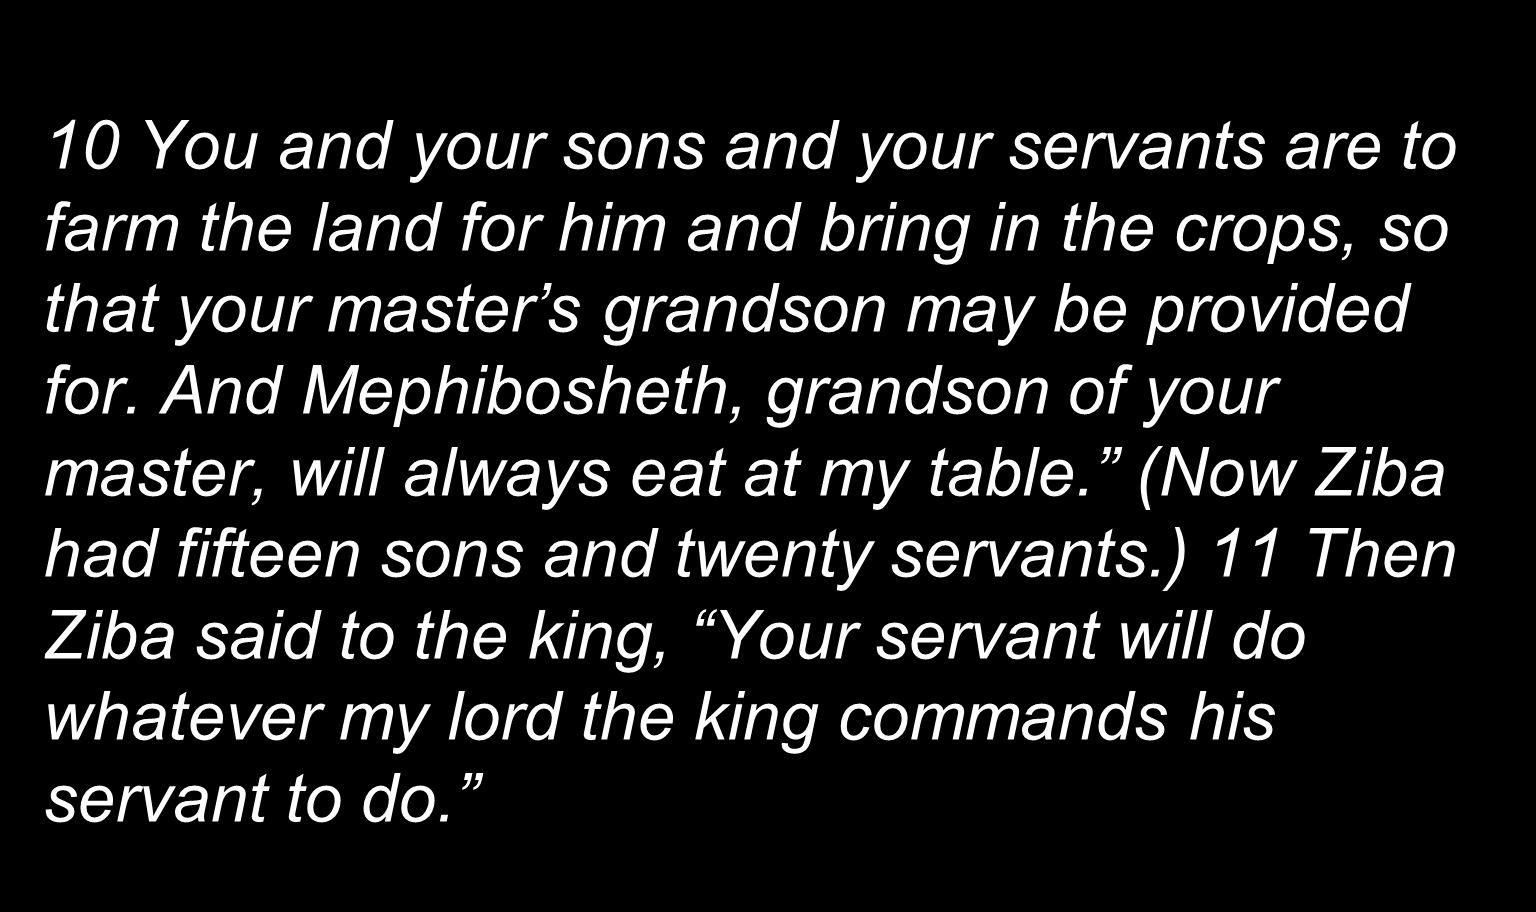 10 You and your sons and your servants are to farm the land for him and bring in the crops, so that your master's grandson may be provided for.